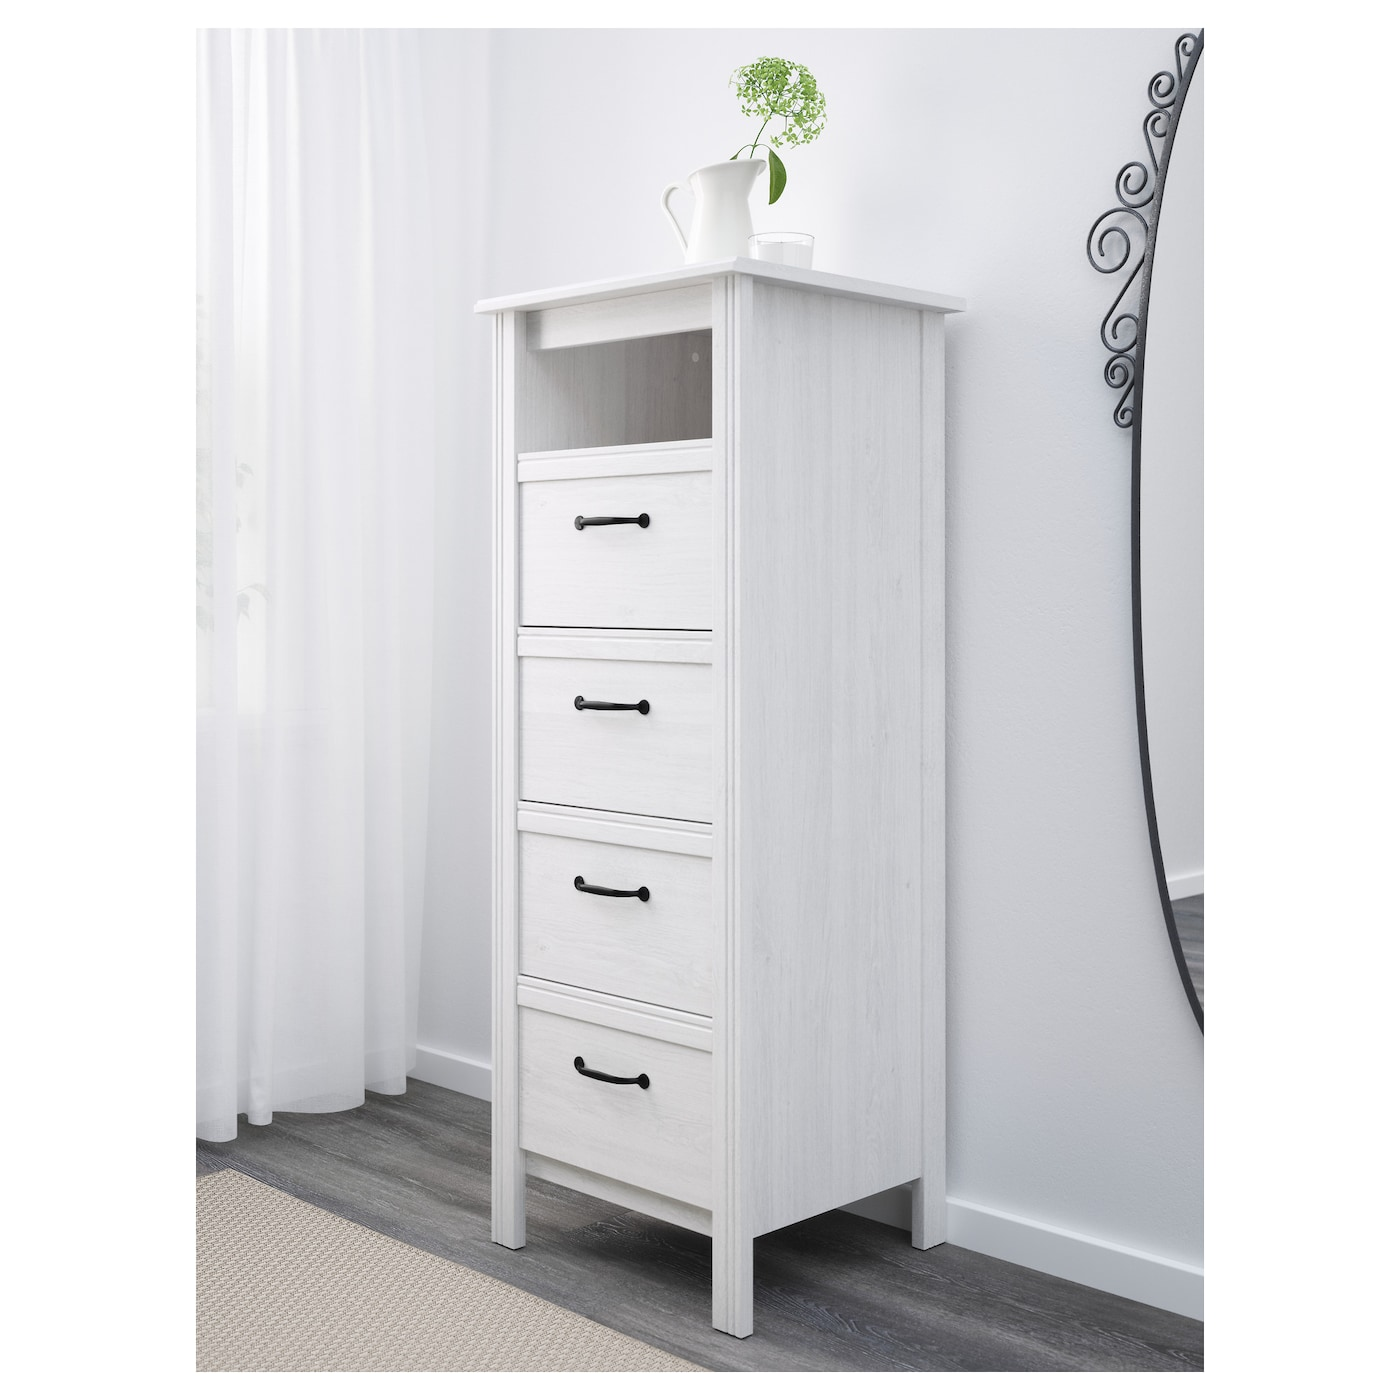 Brusali Chest Of 4 Drawers White 51x134 Cm Ikea